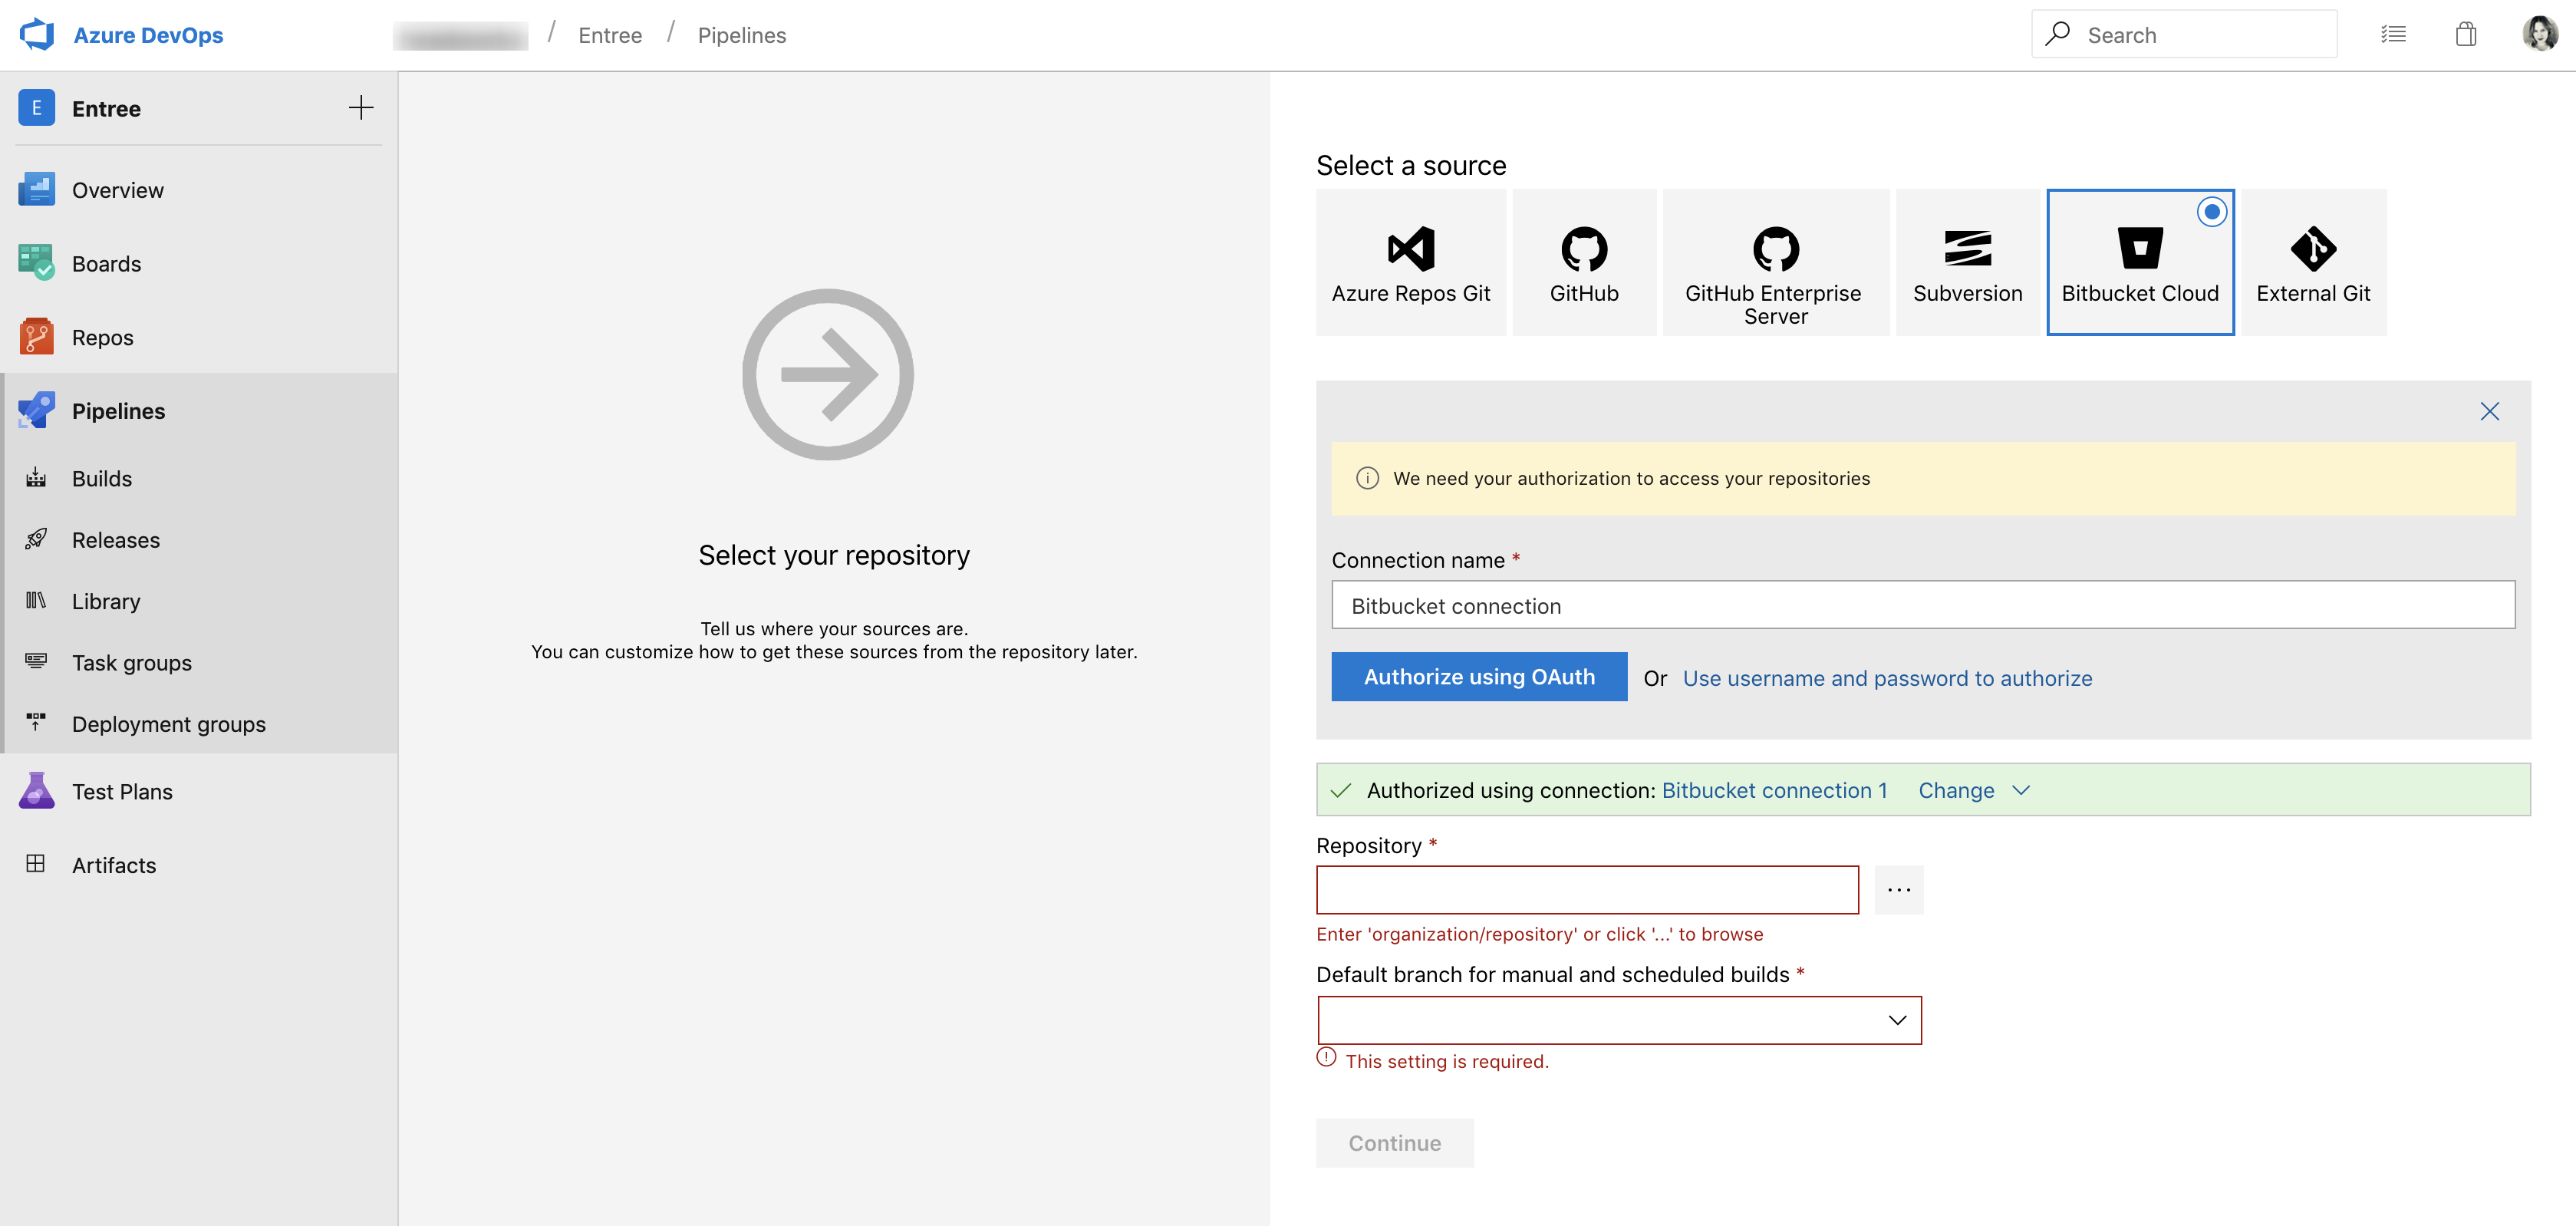 Continuous Integration for Xamarin Forms iOS with DevOps